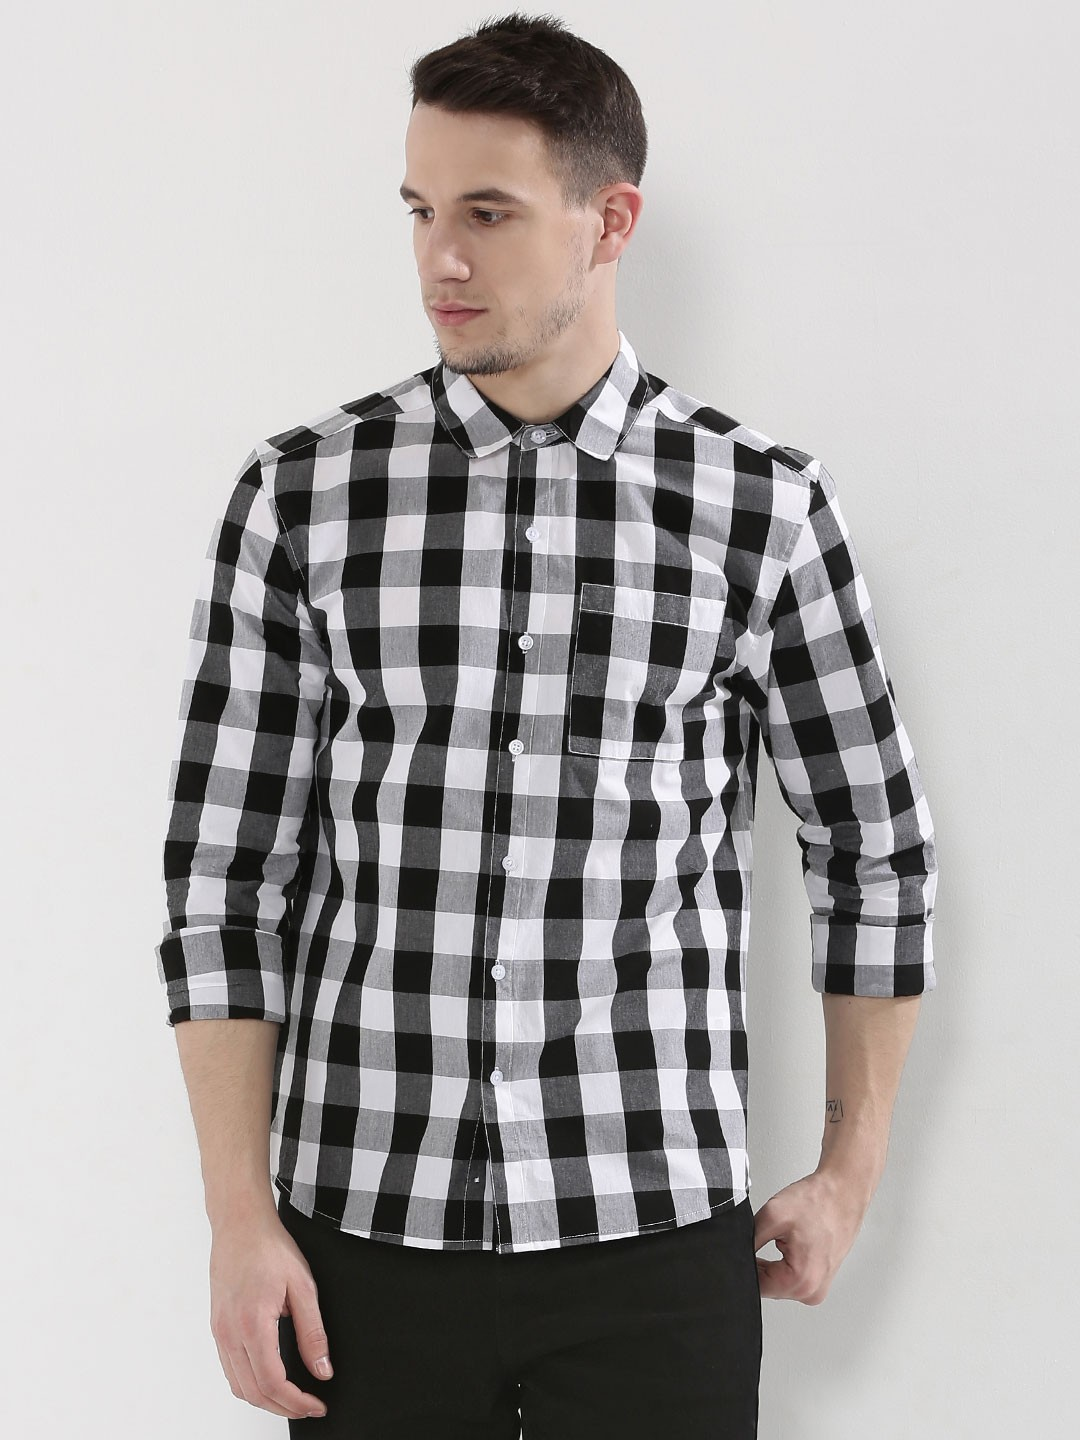 buy large grid check shirt for men men 39 s black white